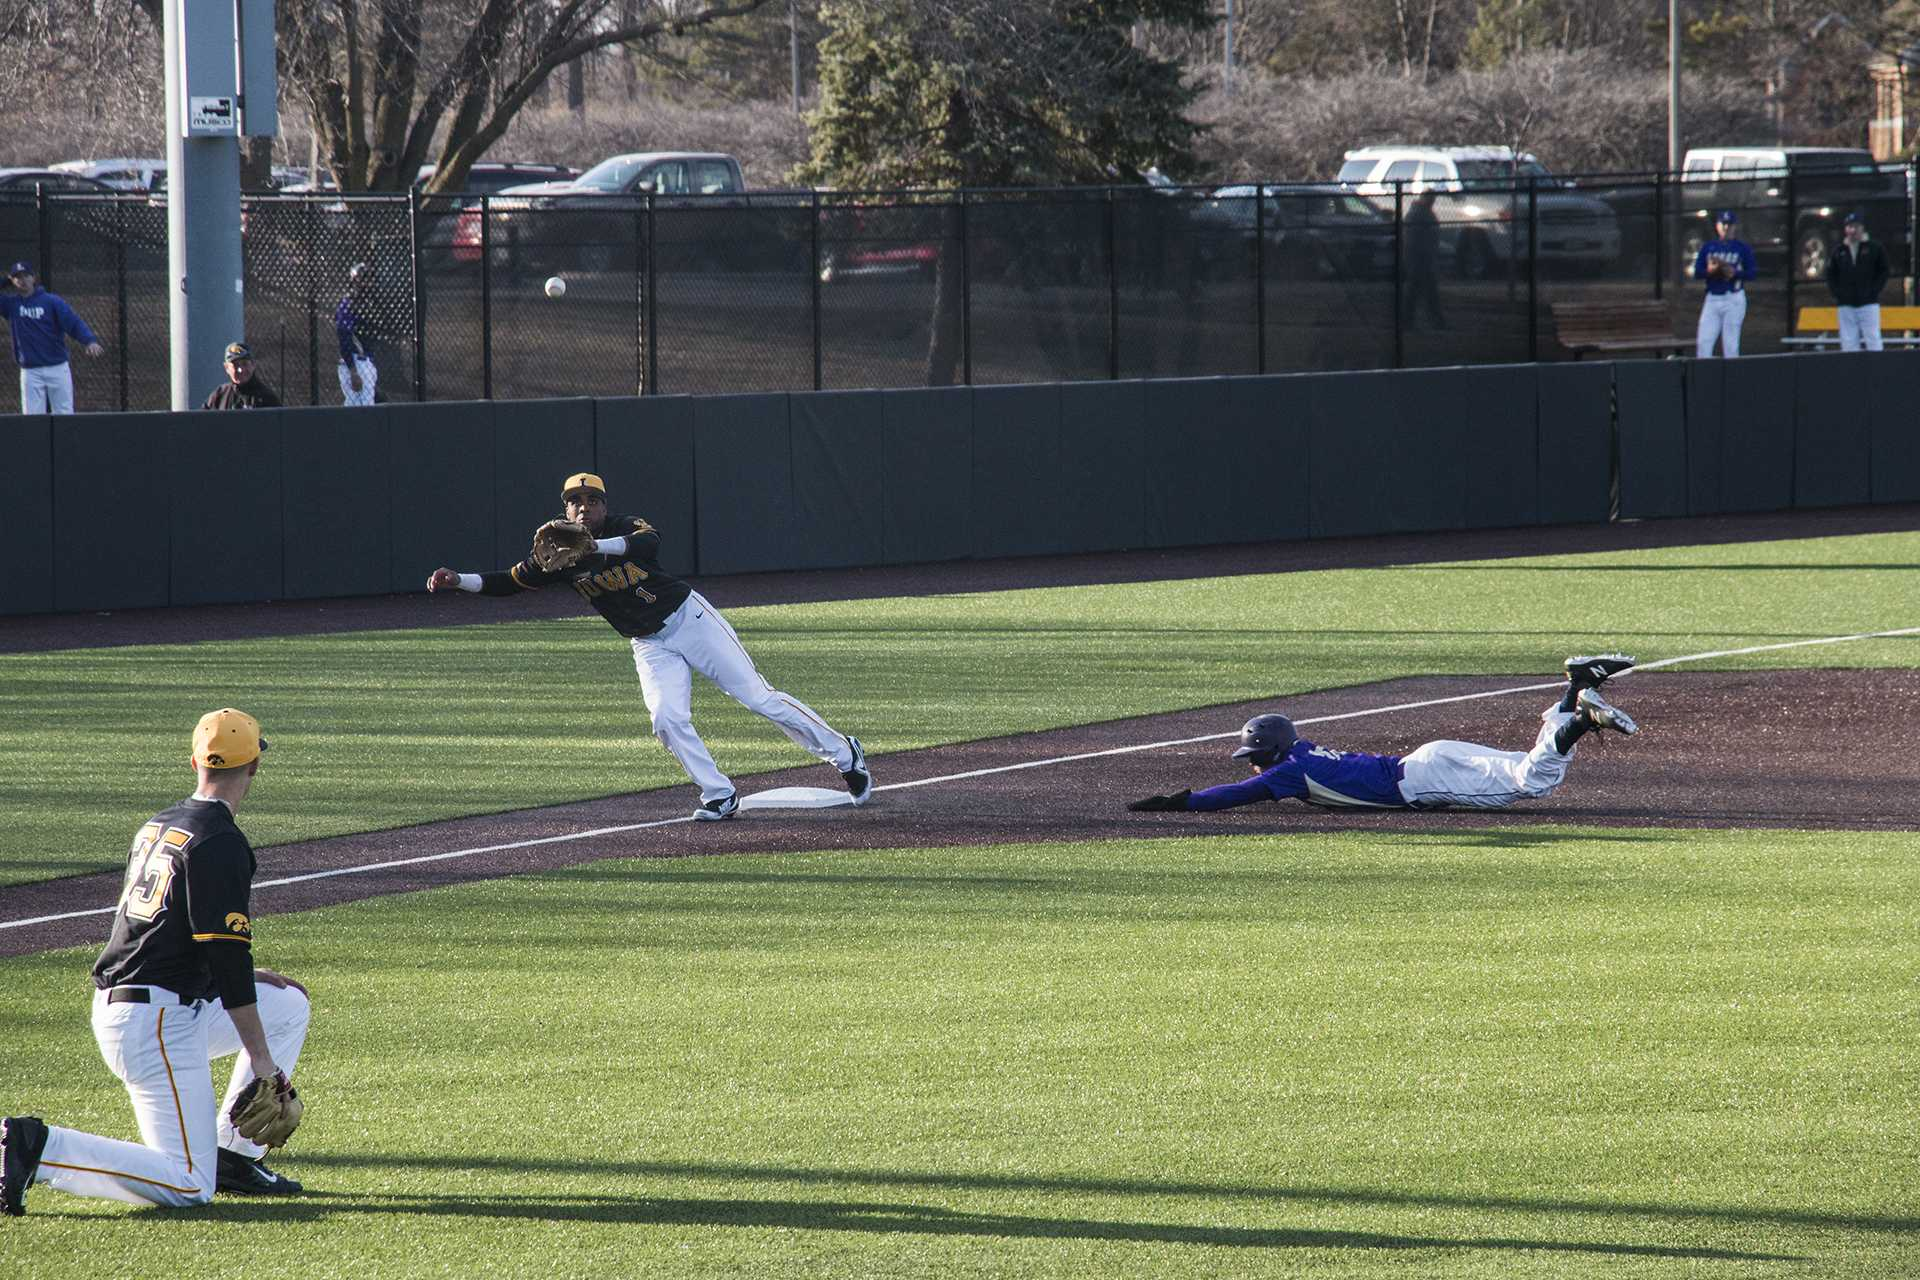 Iowa infielder Lorenzo Elion prepares to catch the ball during men's baseball Iowa vs. Loras at Duane Banks Field on March 21, 2018. The Hawkeyes defeated the Duhawks 6-4. (Katina Zentz/The Daily Iowan) (Katina Zentz/Daily Iowan)